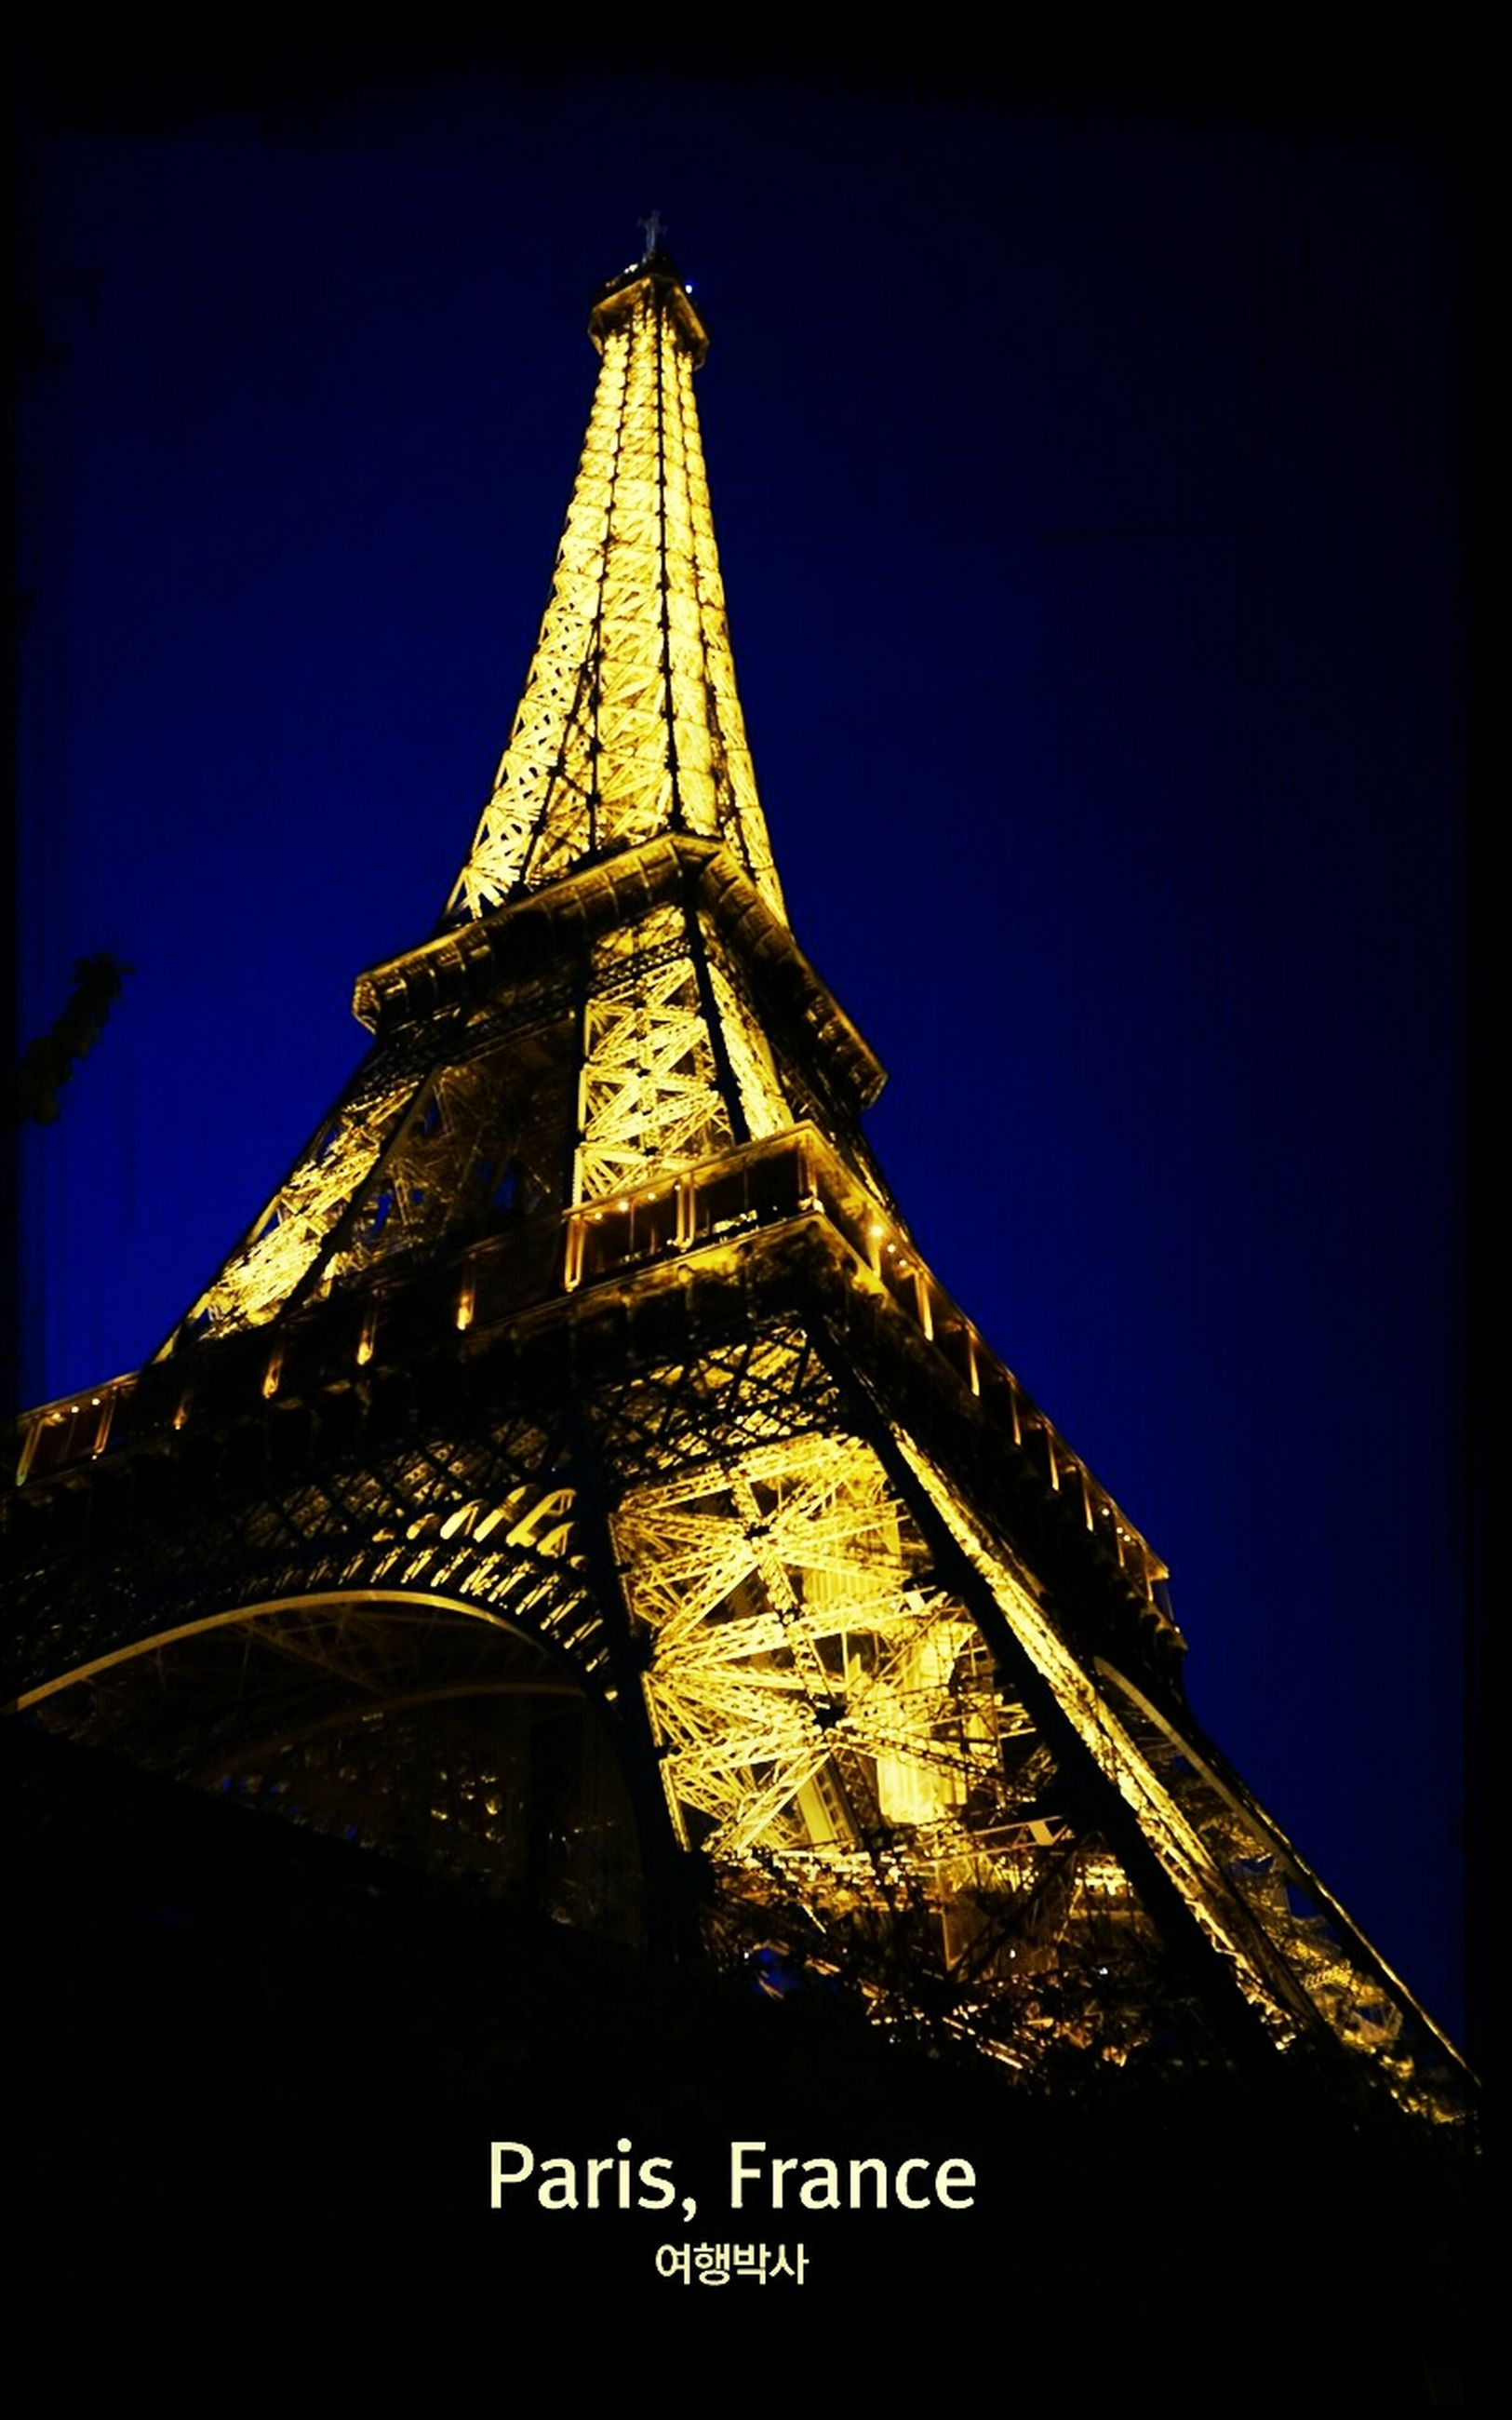 low angle view, architecture, built structure, tower, building exterior, night, clear sky, tall - high, illuminated, sky, famous place, blue, travel destinations, international landmark, auto post production filter, capital cities, transfer print, city, no people, communication